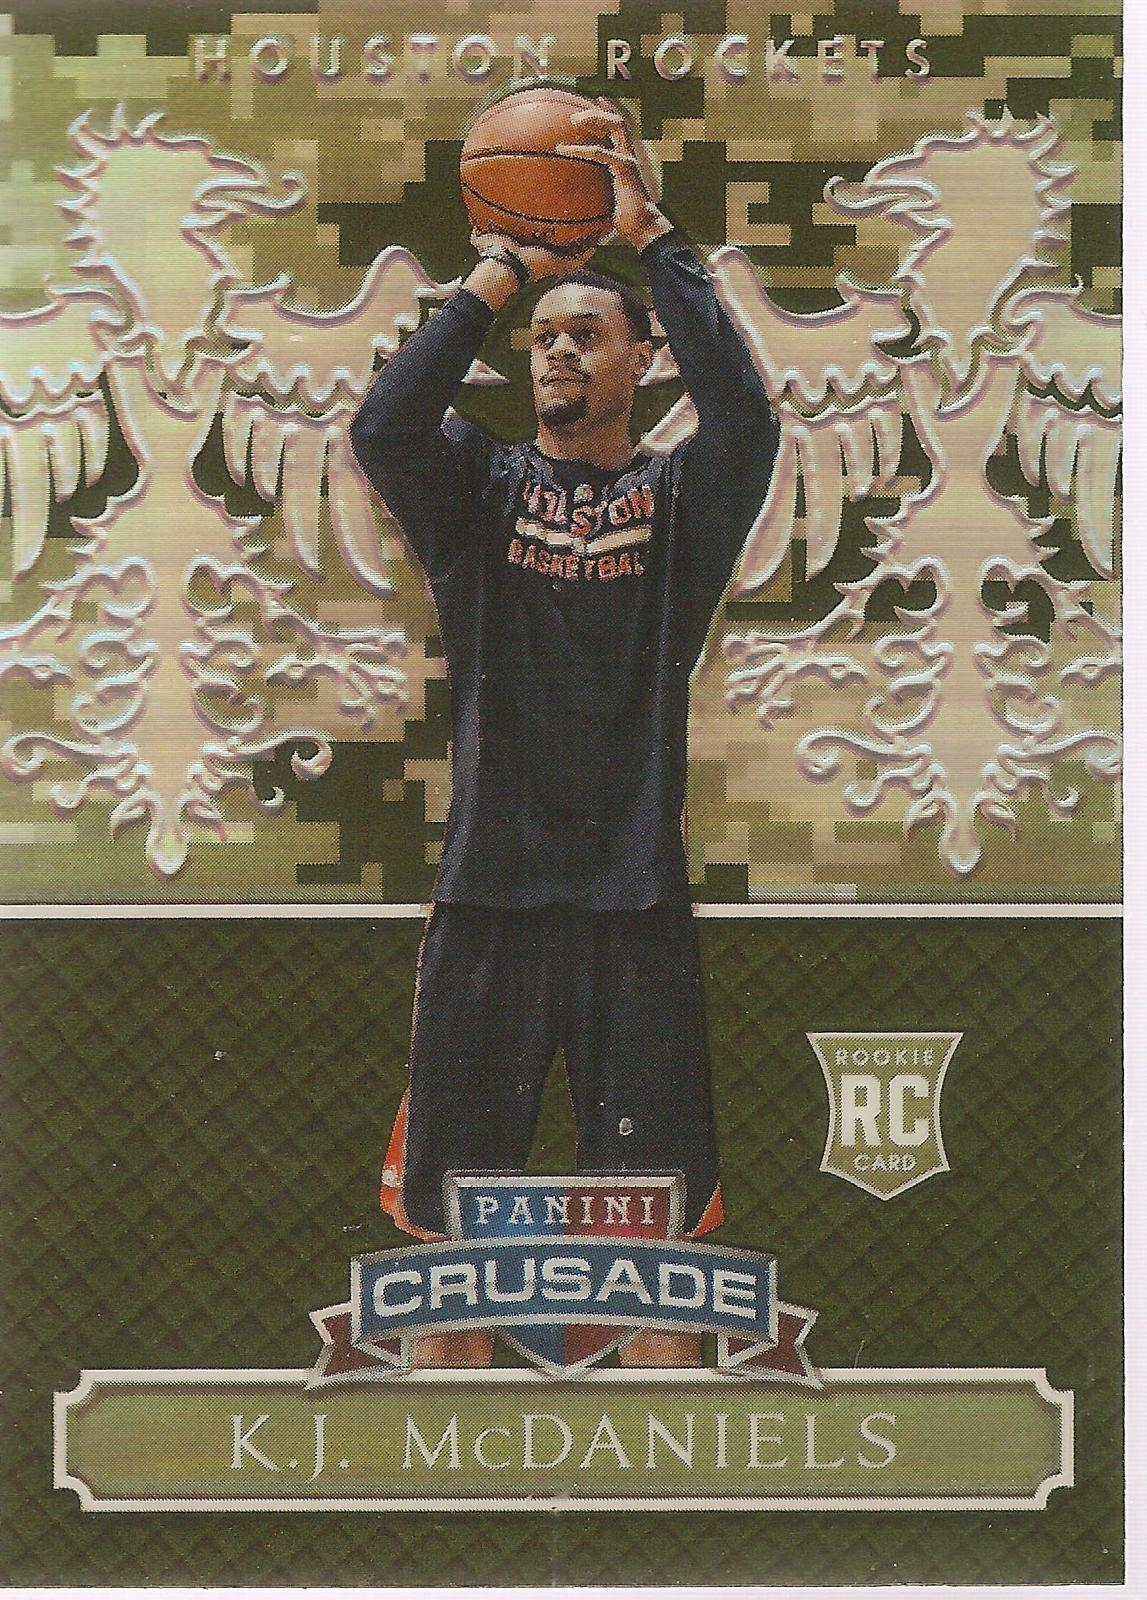 Primary image for KJ McDaniels Excalibur 14-15 #162 Camo Crusade Prizm Houston Rockets Brooklyn